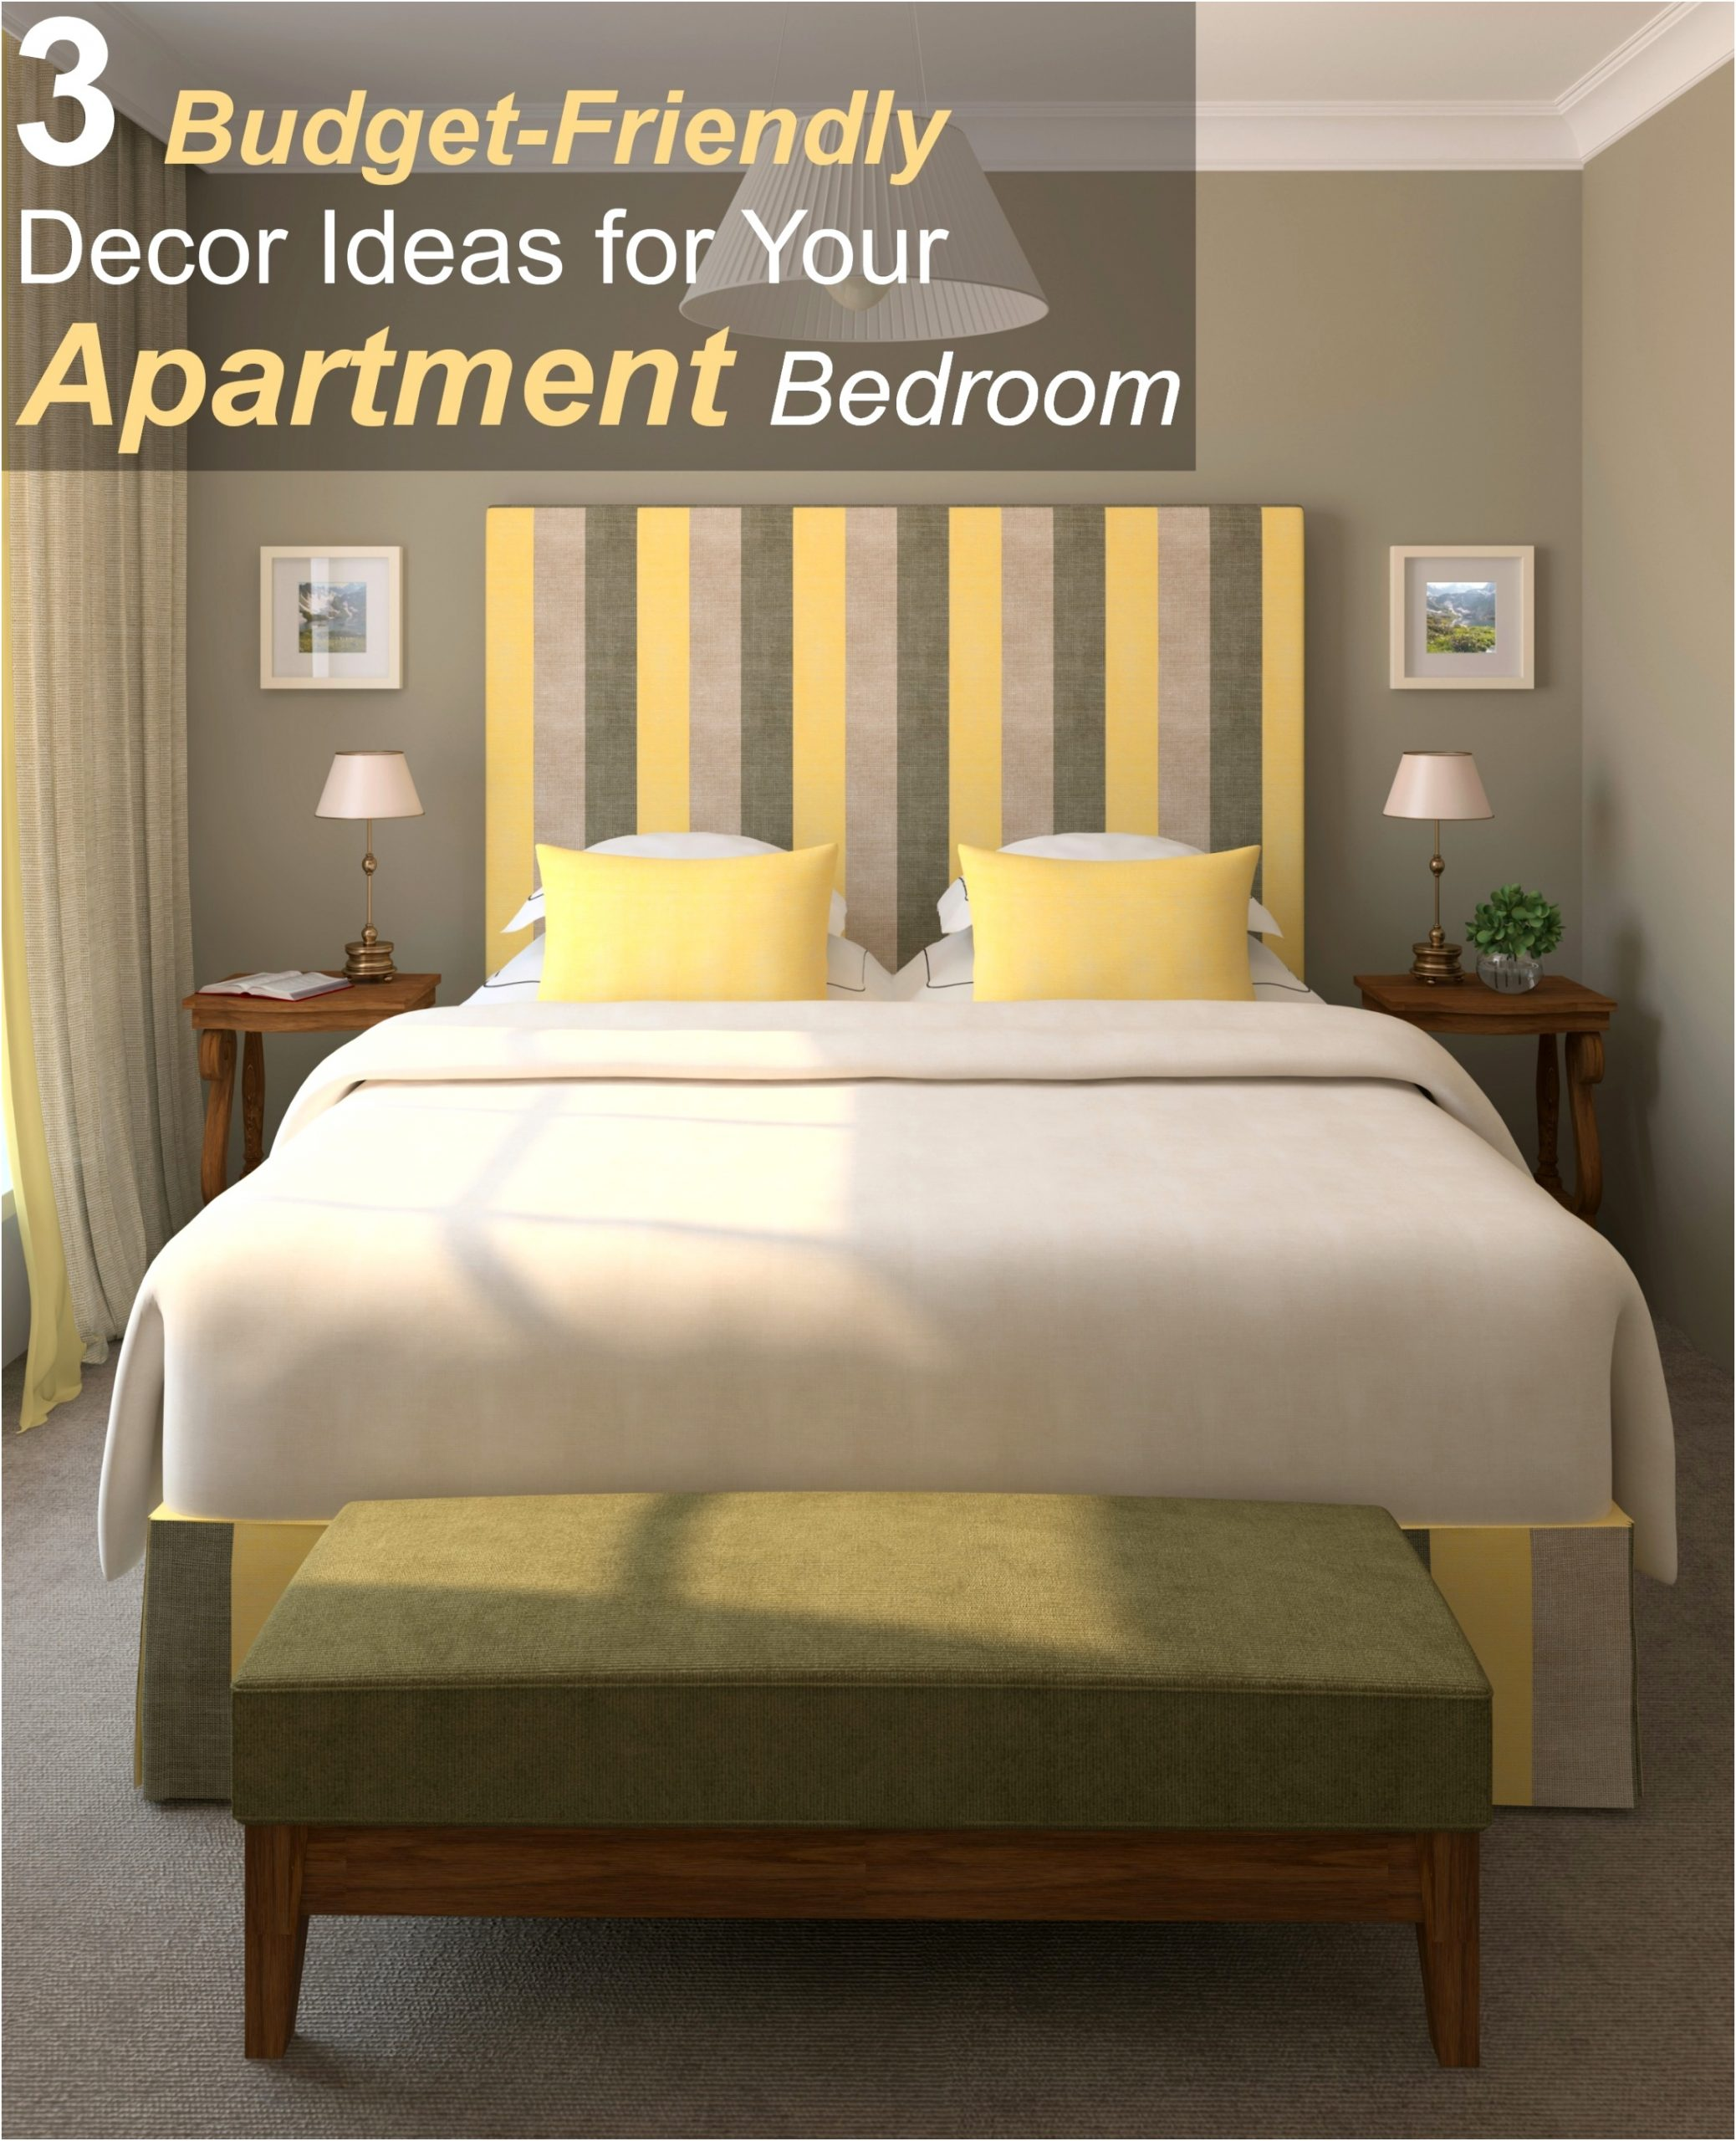 purple bedroom decorating ideas gray design country ideas for decorating your bedroom think bud friendly decor apartment